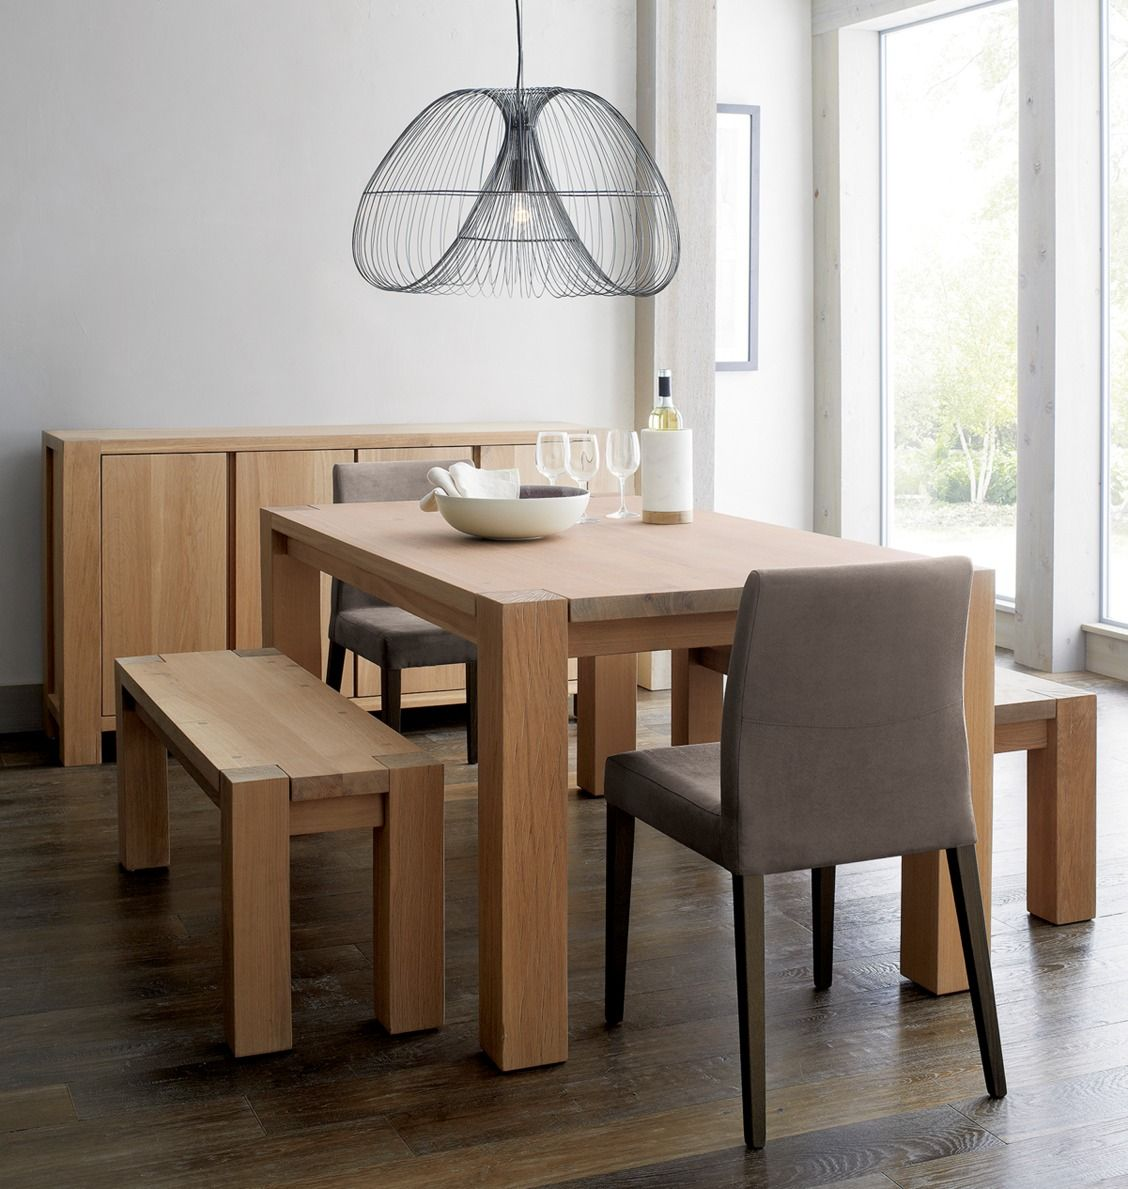 Our Bold Rustic Big Sur 65 Dining Table Is All About The Sheer